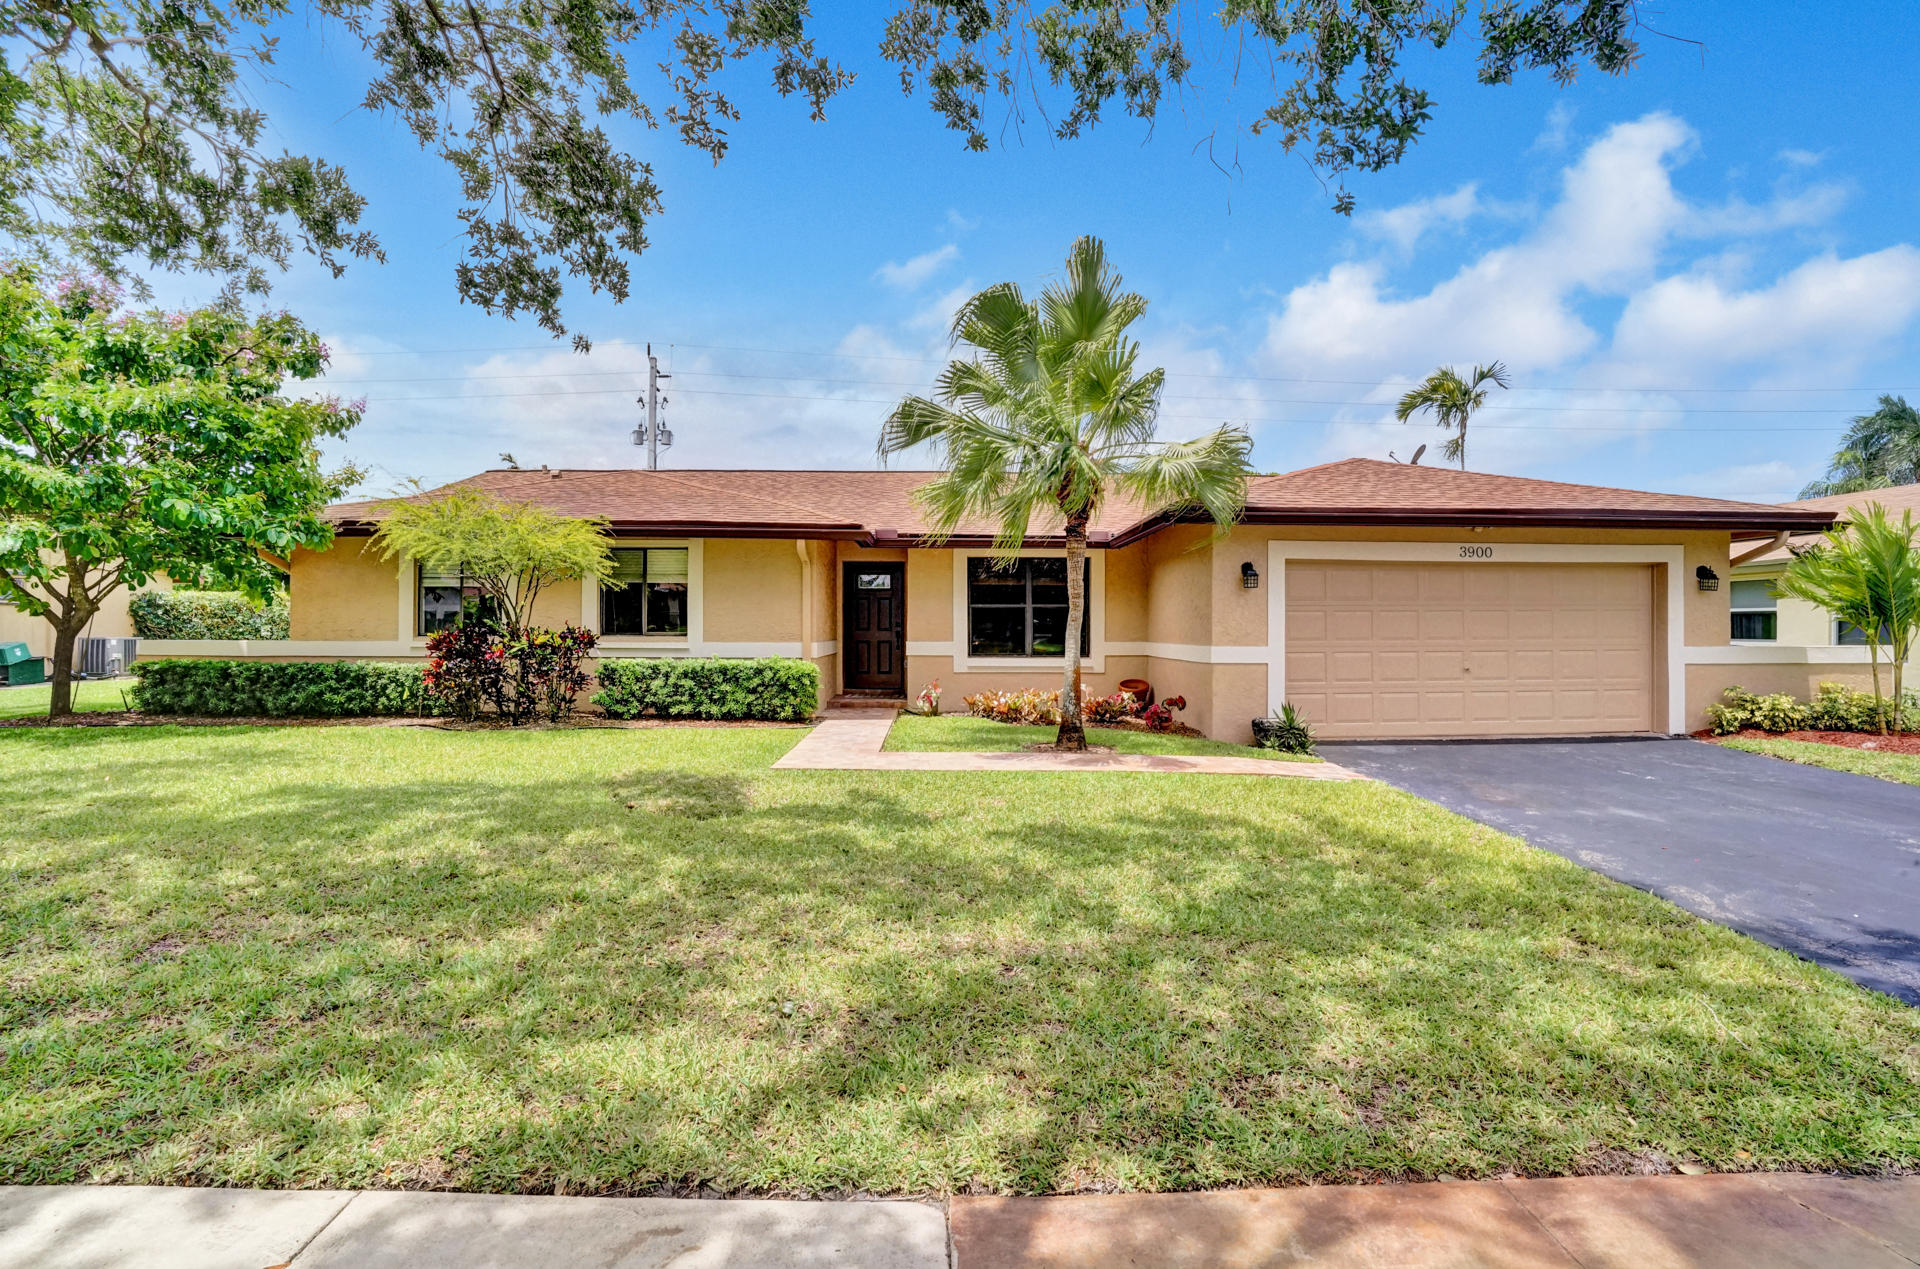 Home for sale in Rock Creek Cooper City Florida